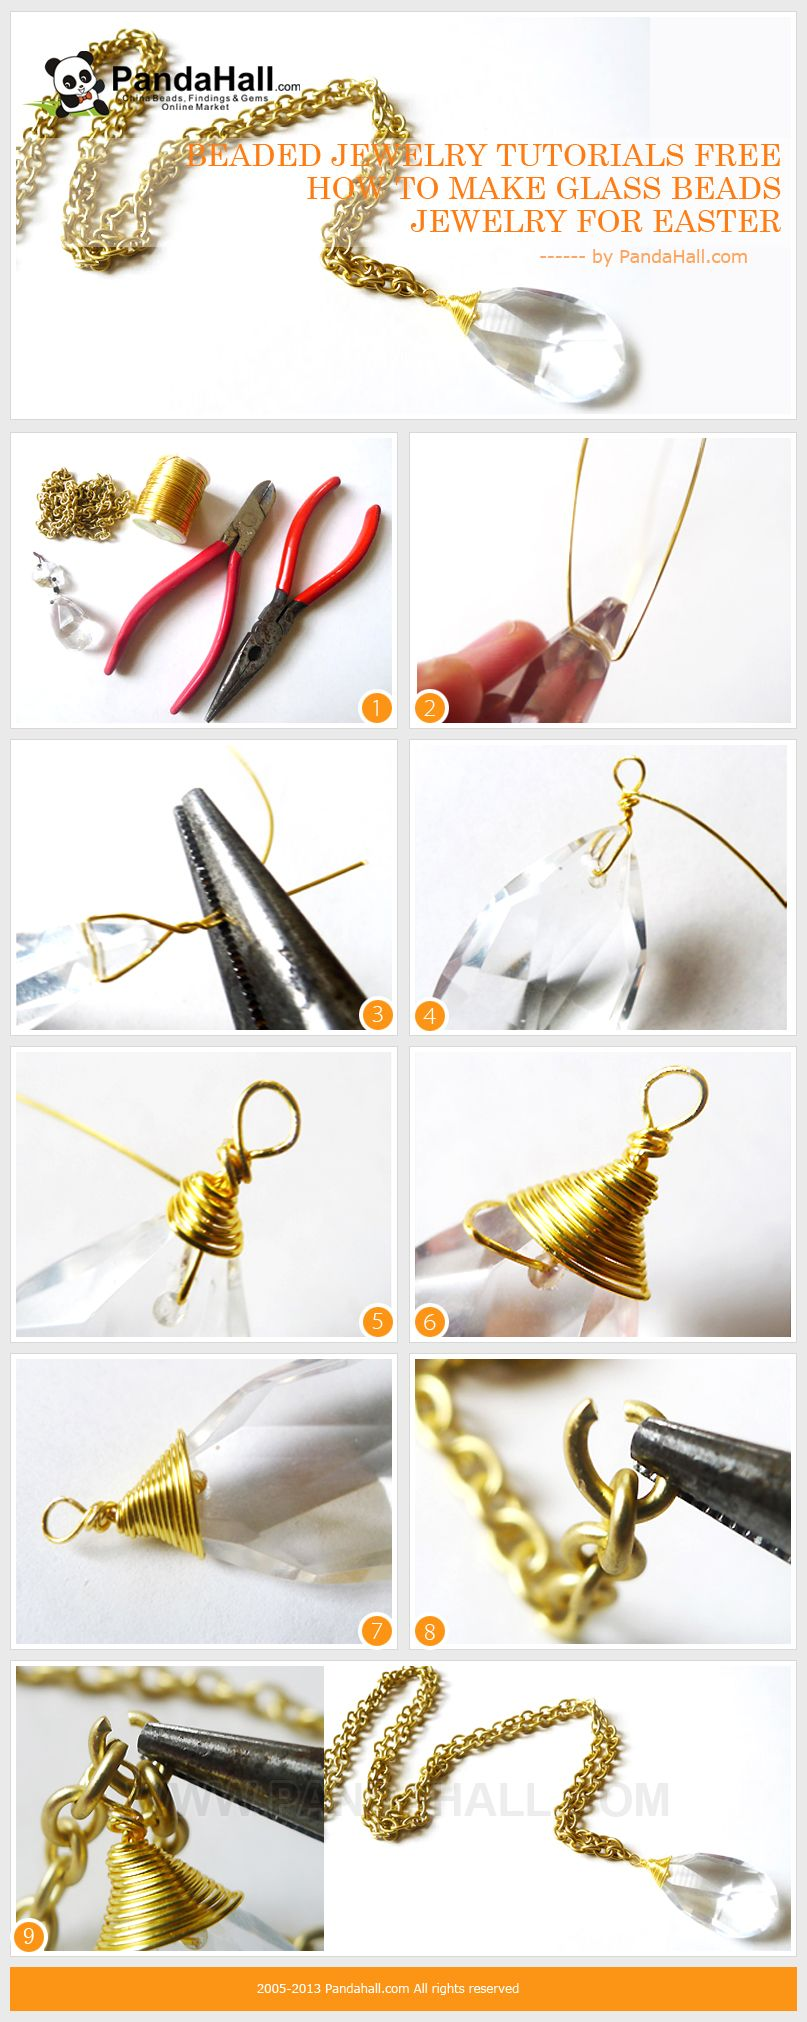 Wanna find some definitely beaded jewelry tutorials free and easy? Just take a look here and you will gain an extremely easy and quick glass beads jewelry for the approaching Easter.